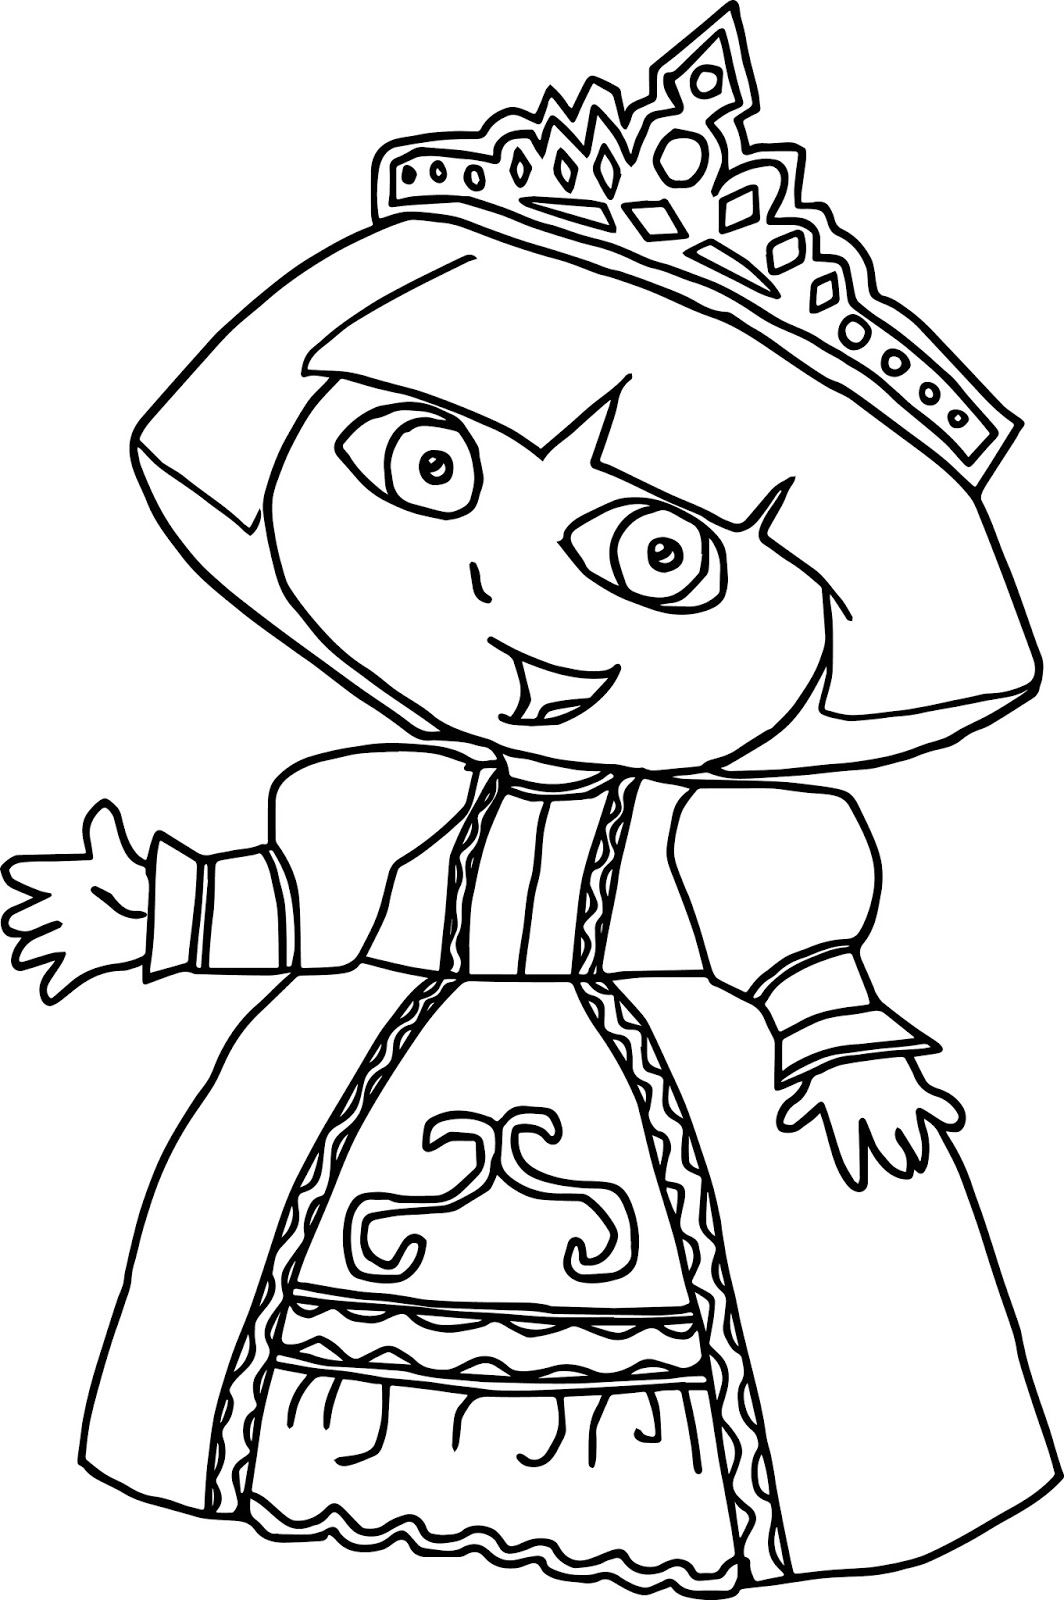 Dora the explorer 2 coloring pages coloring home for Dora the explorer coloring pages to print